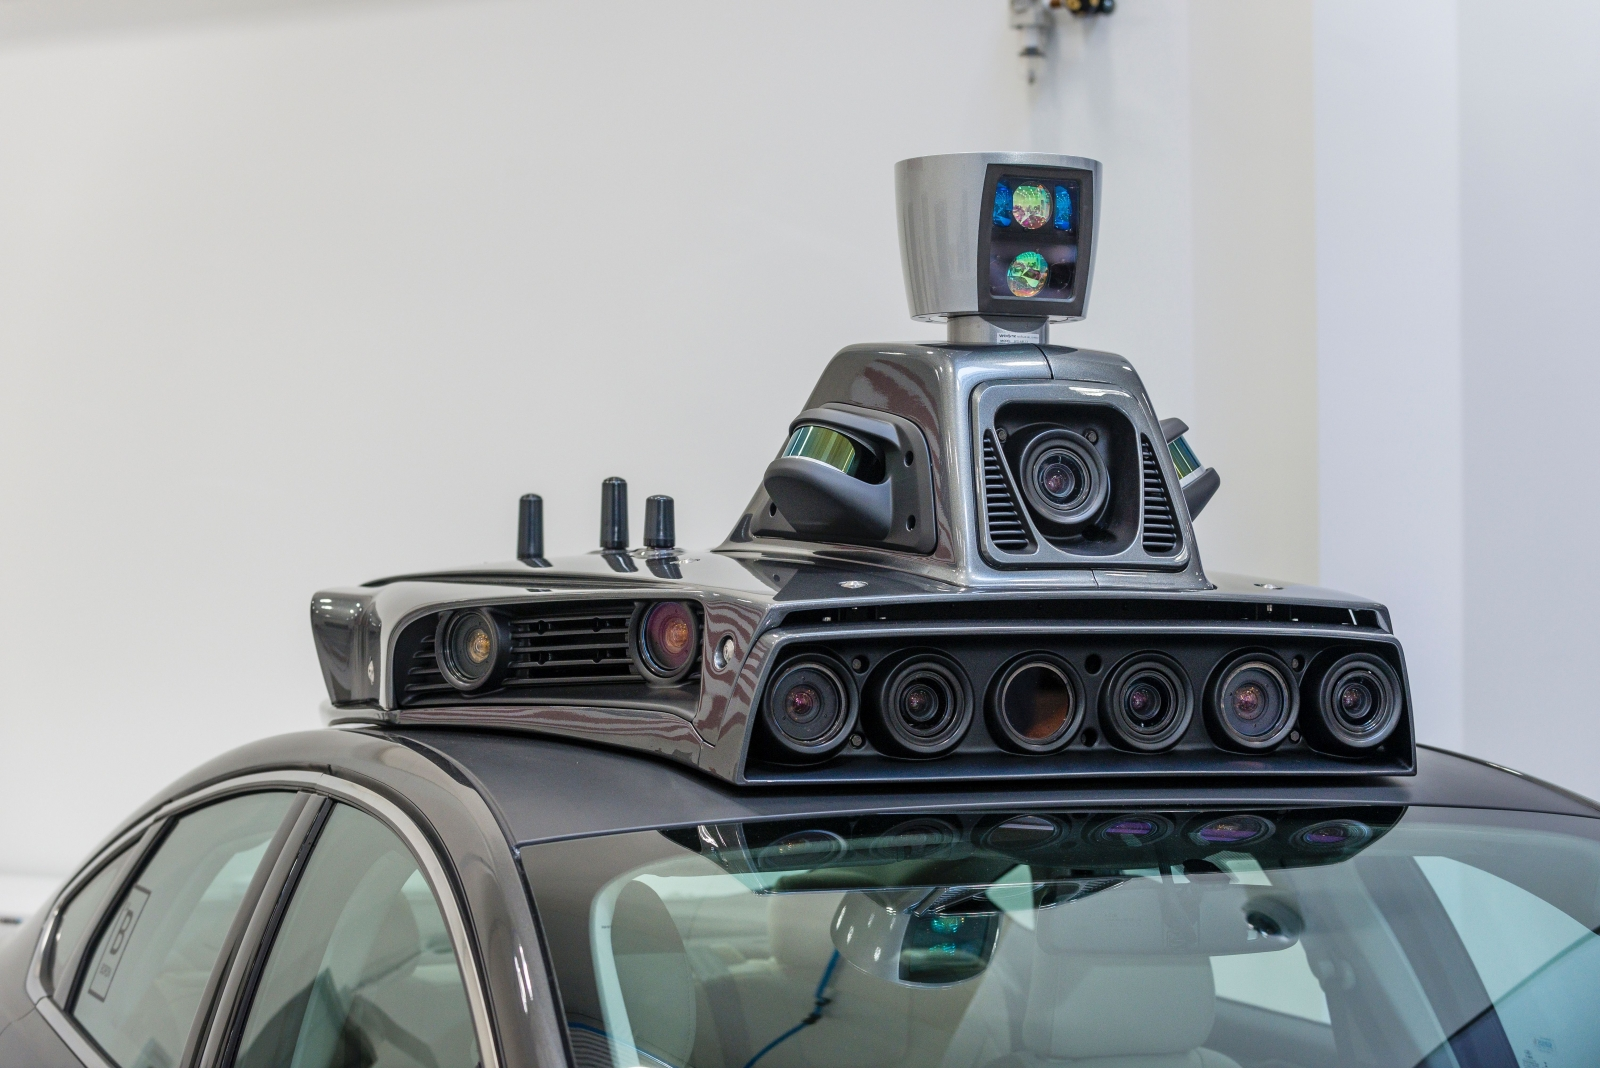 South Korea largest test bed for self-drivingcars